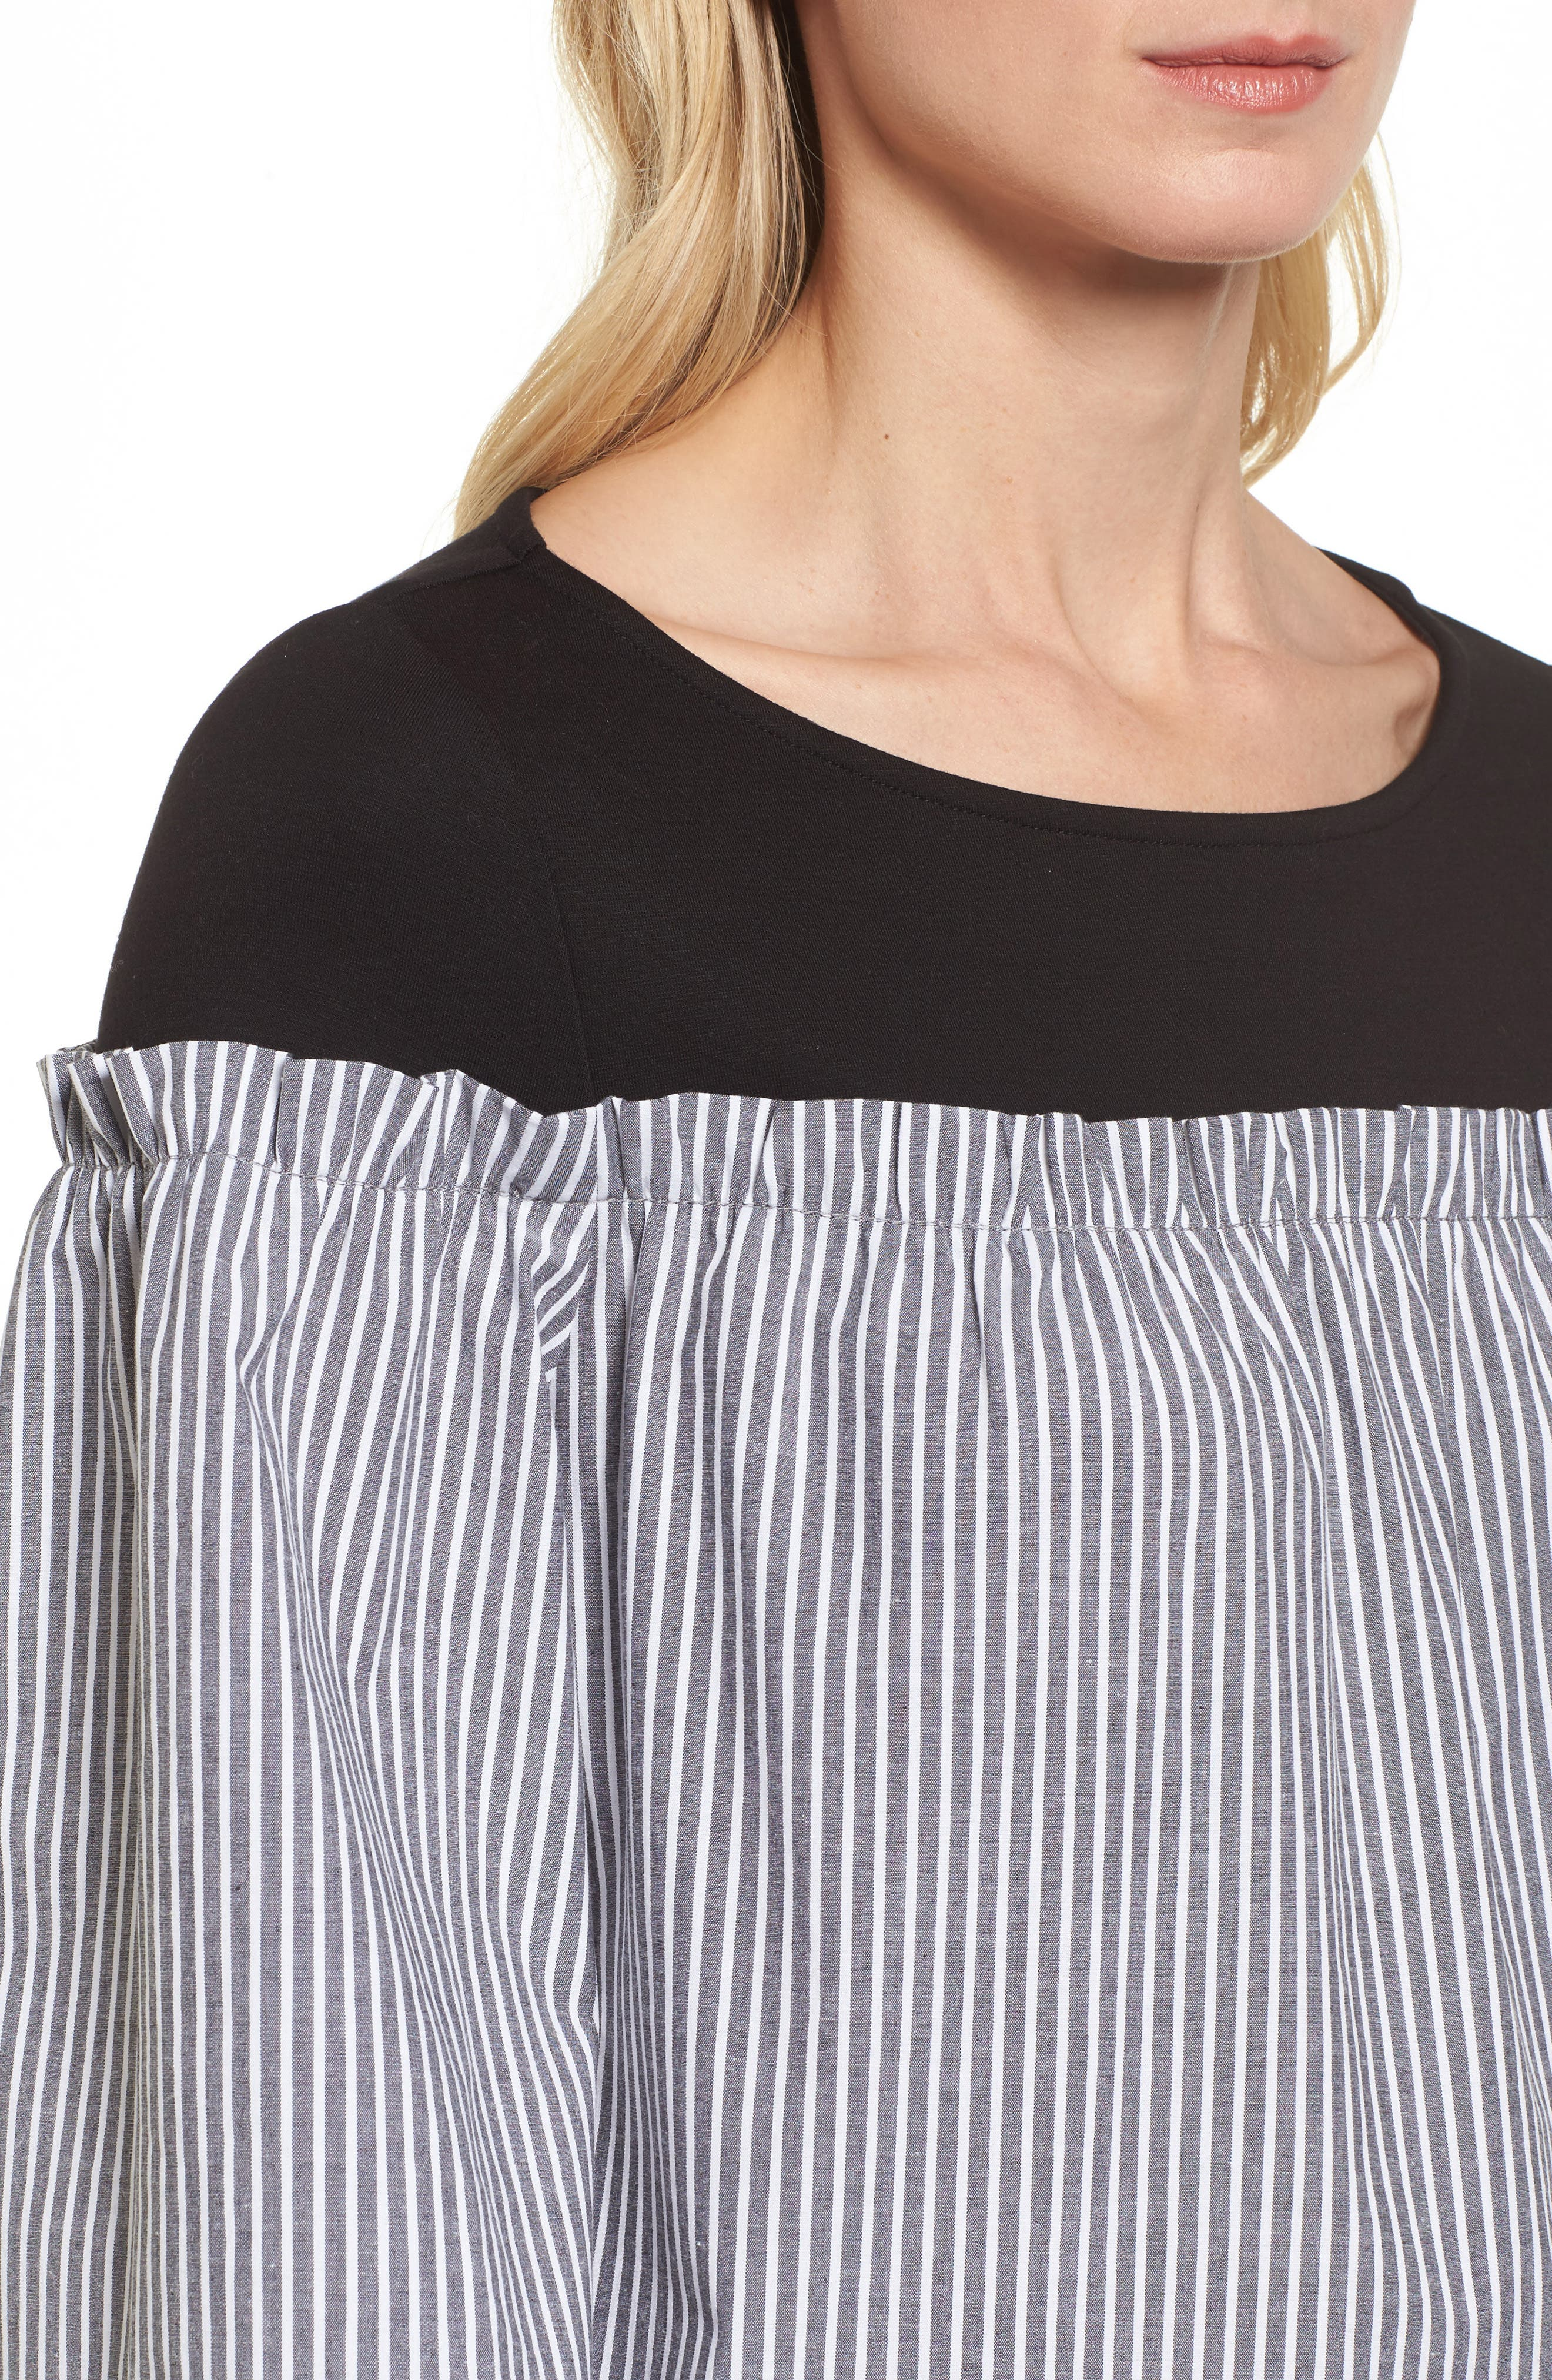 Ruffle Detail Mix Media High/Low Shirt,                             Alternate thumbnail 7, color,